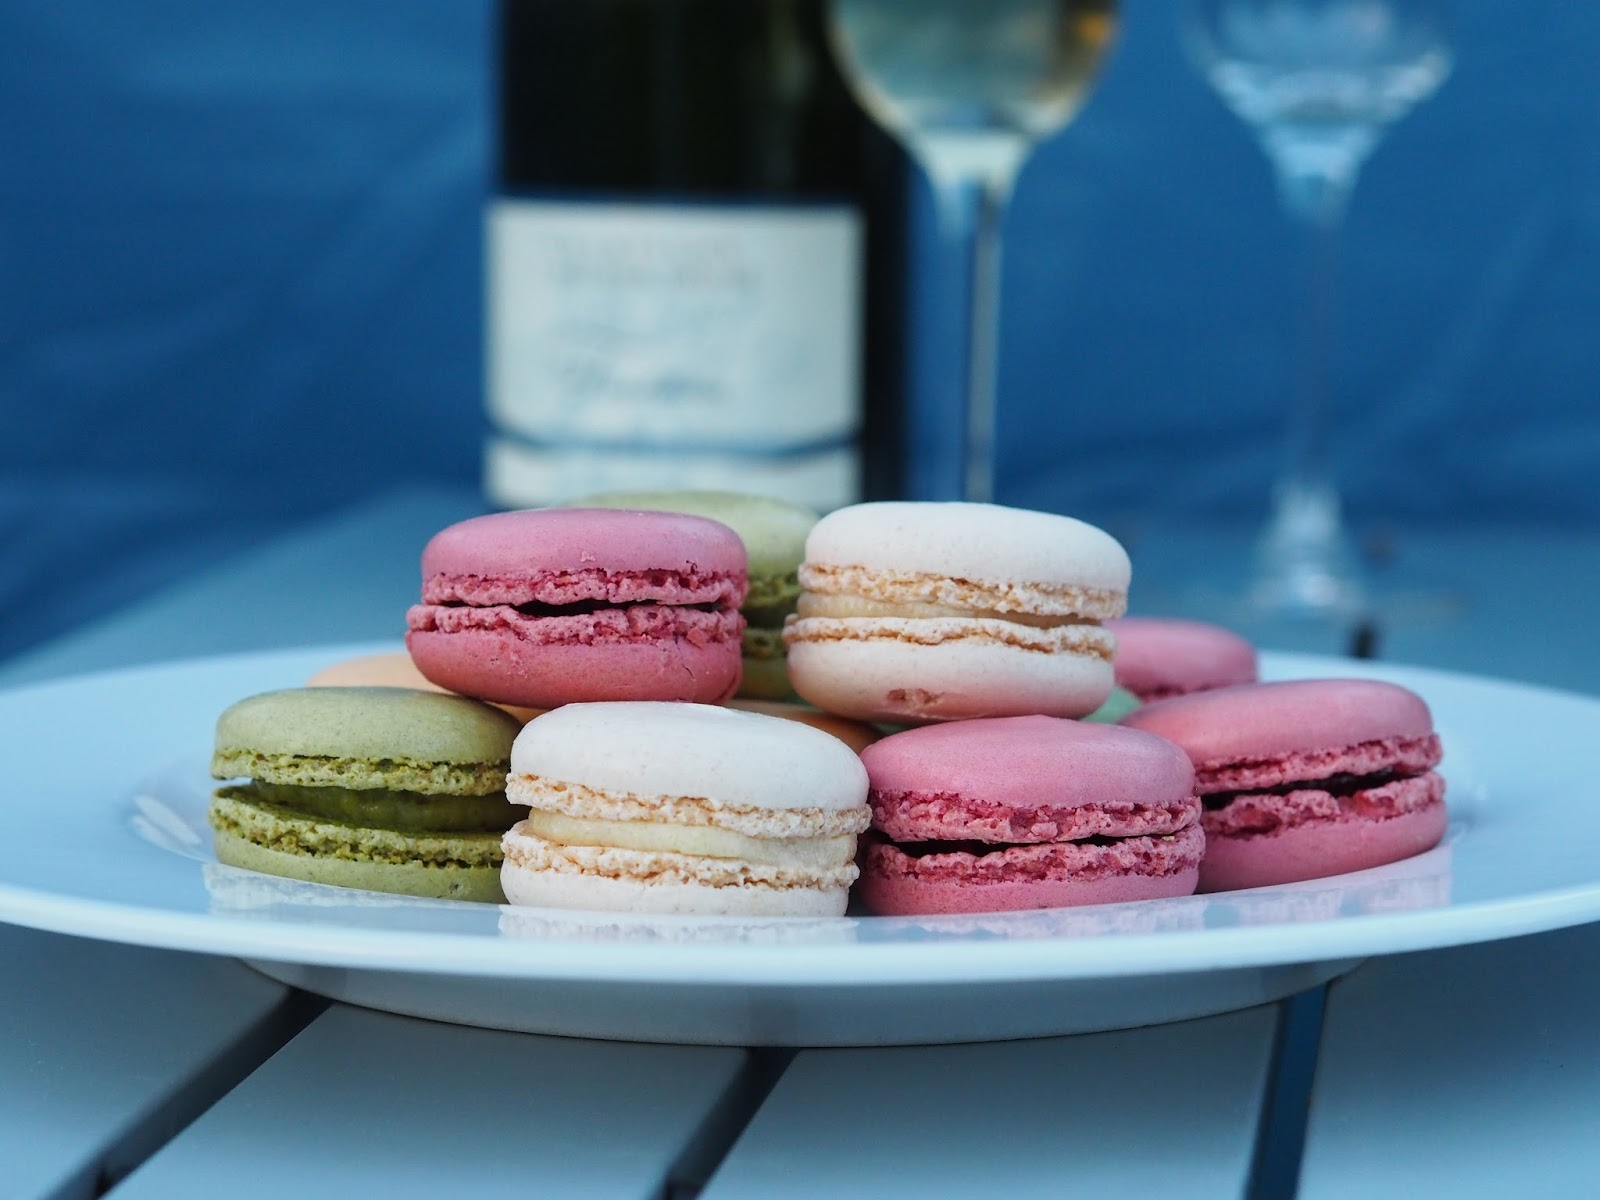 France camping Guignicourt travel road trip Reims macarons Priceless Life of Mine